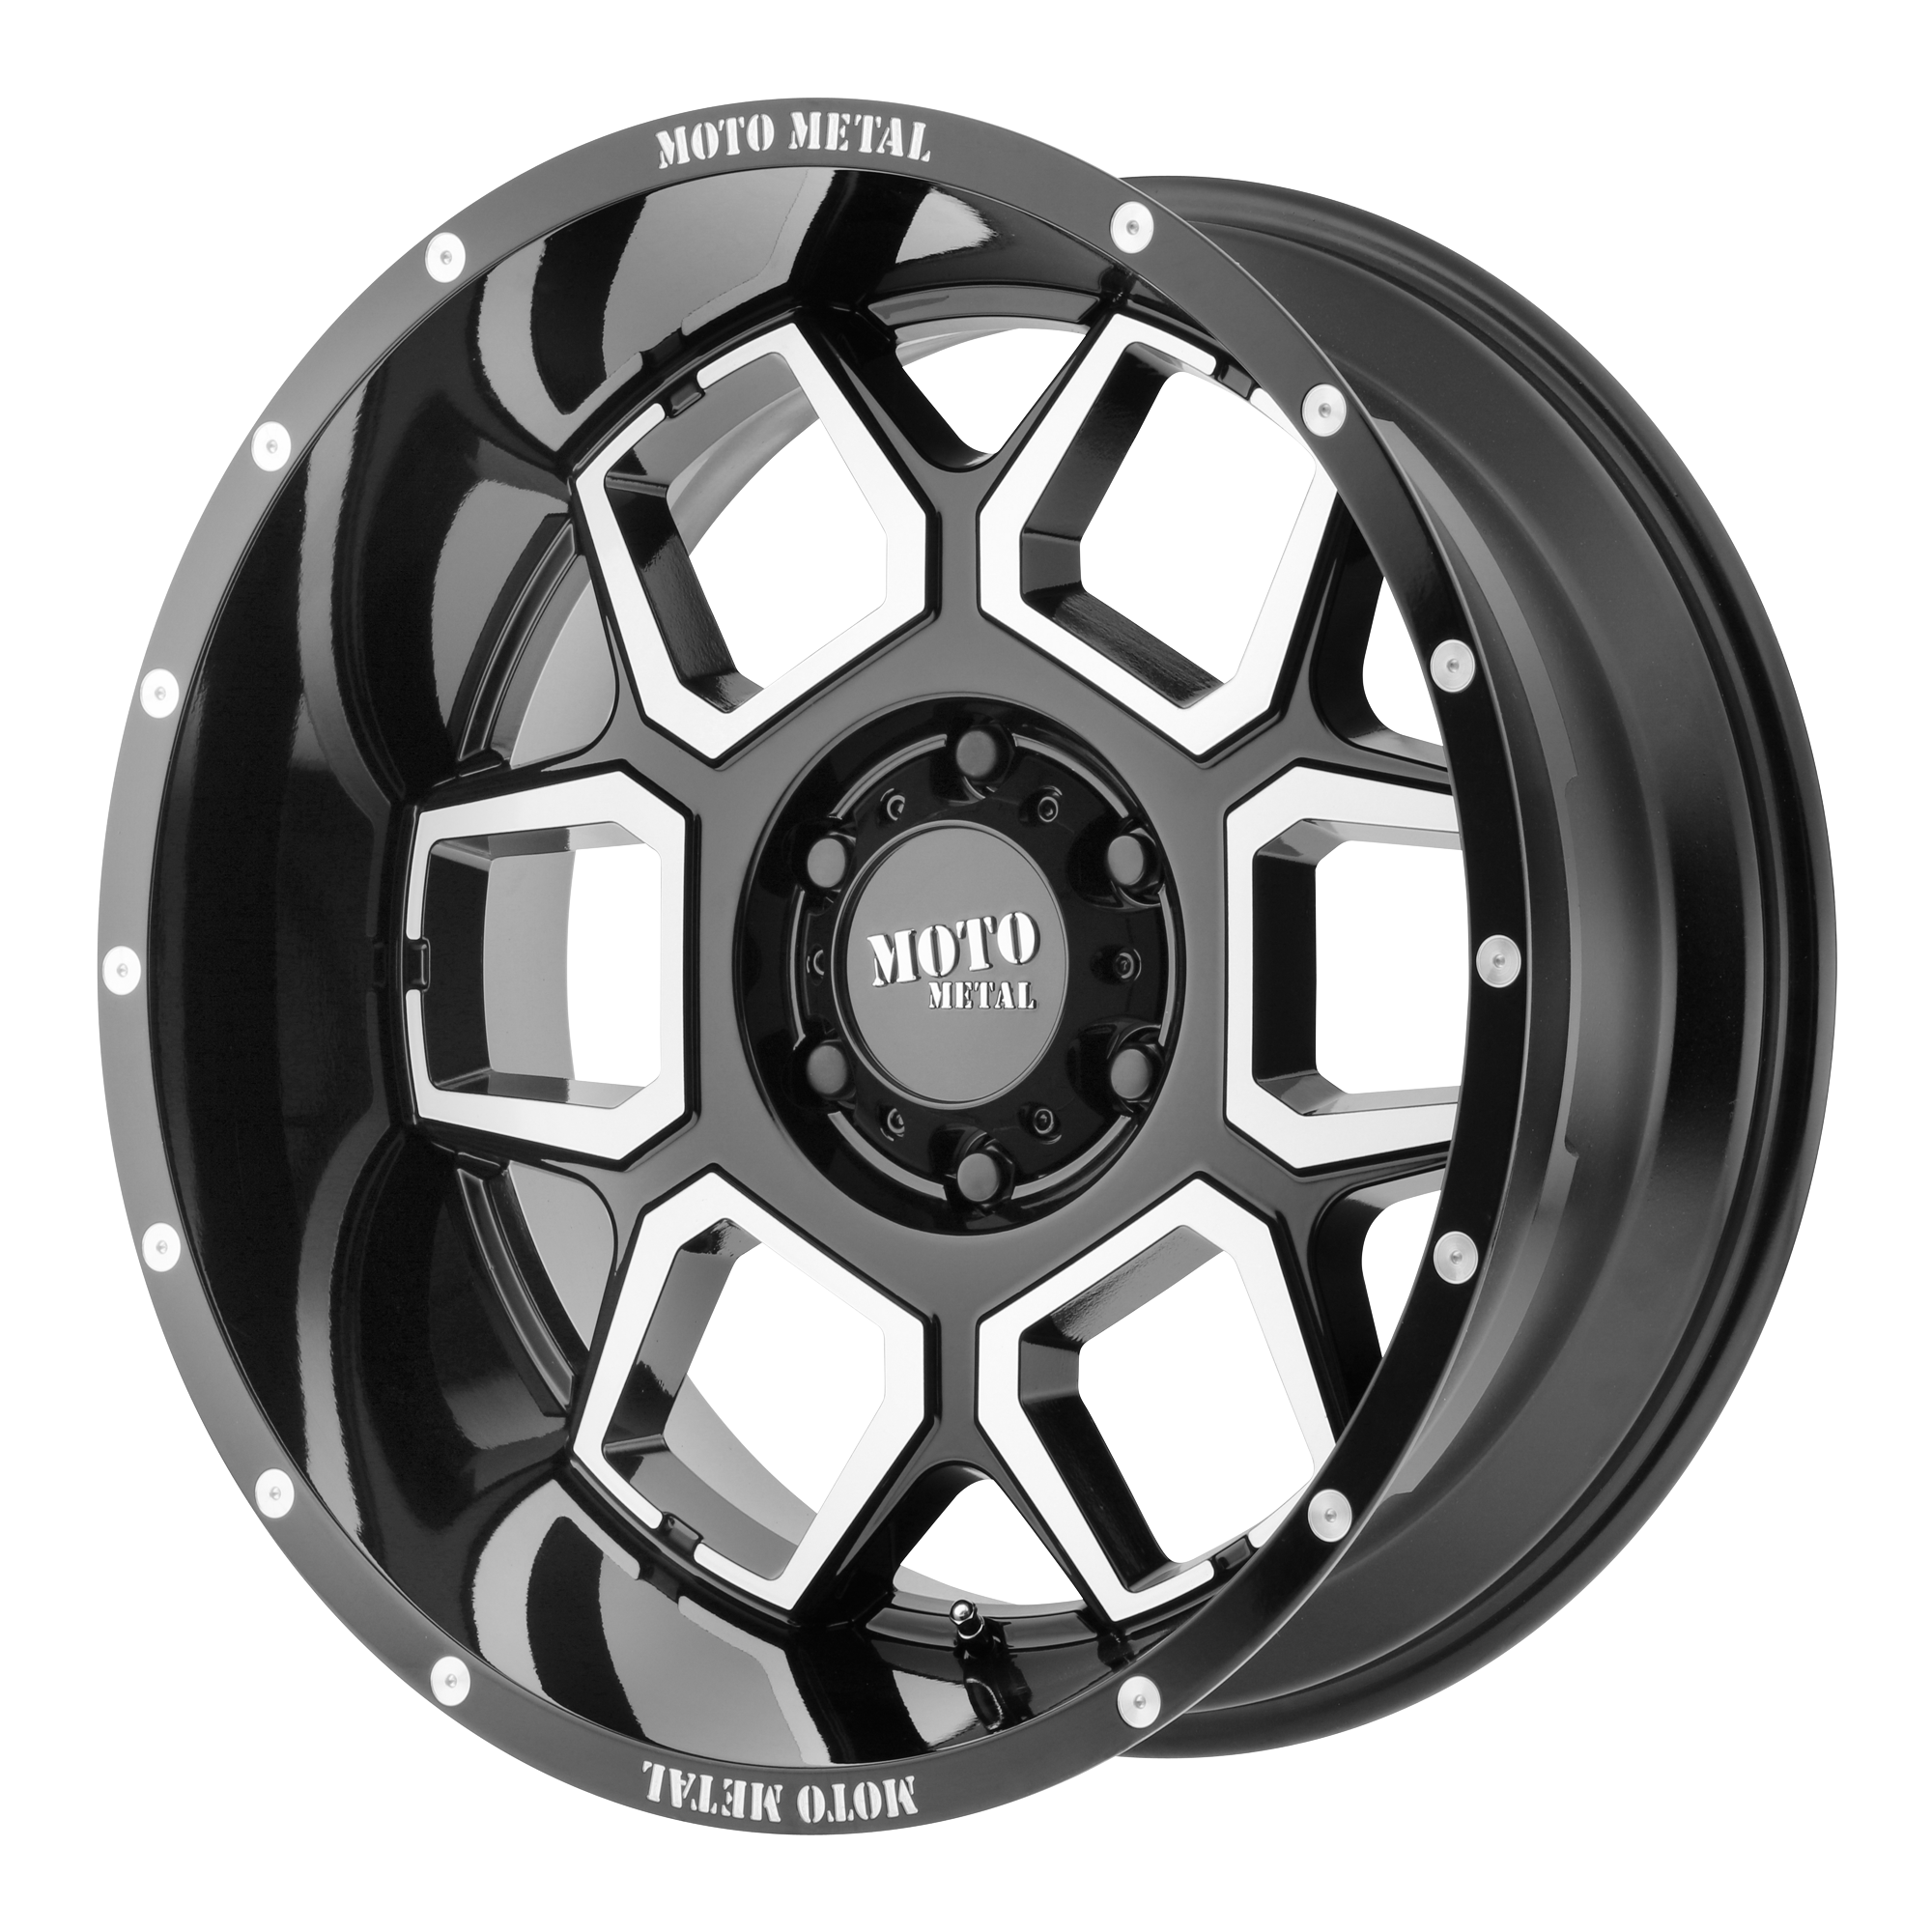 Moto Metal Offroad Wheels SPADE Gloss Black Machined